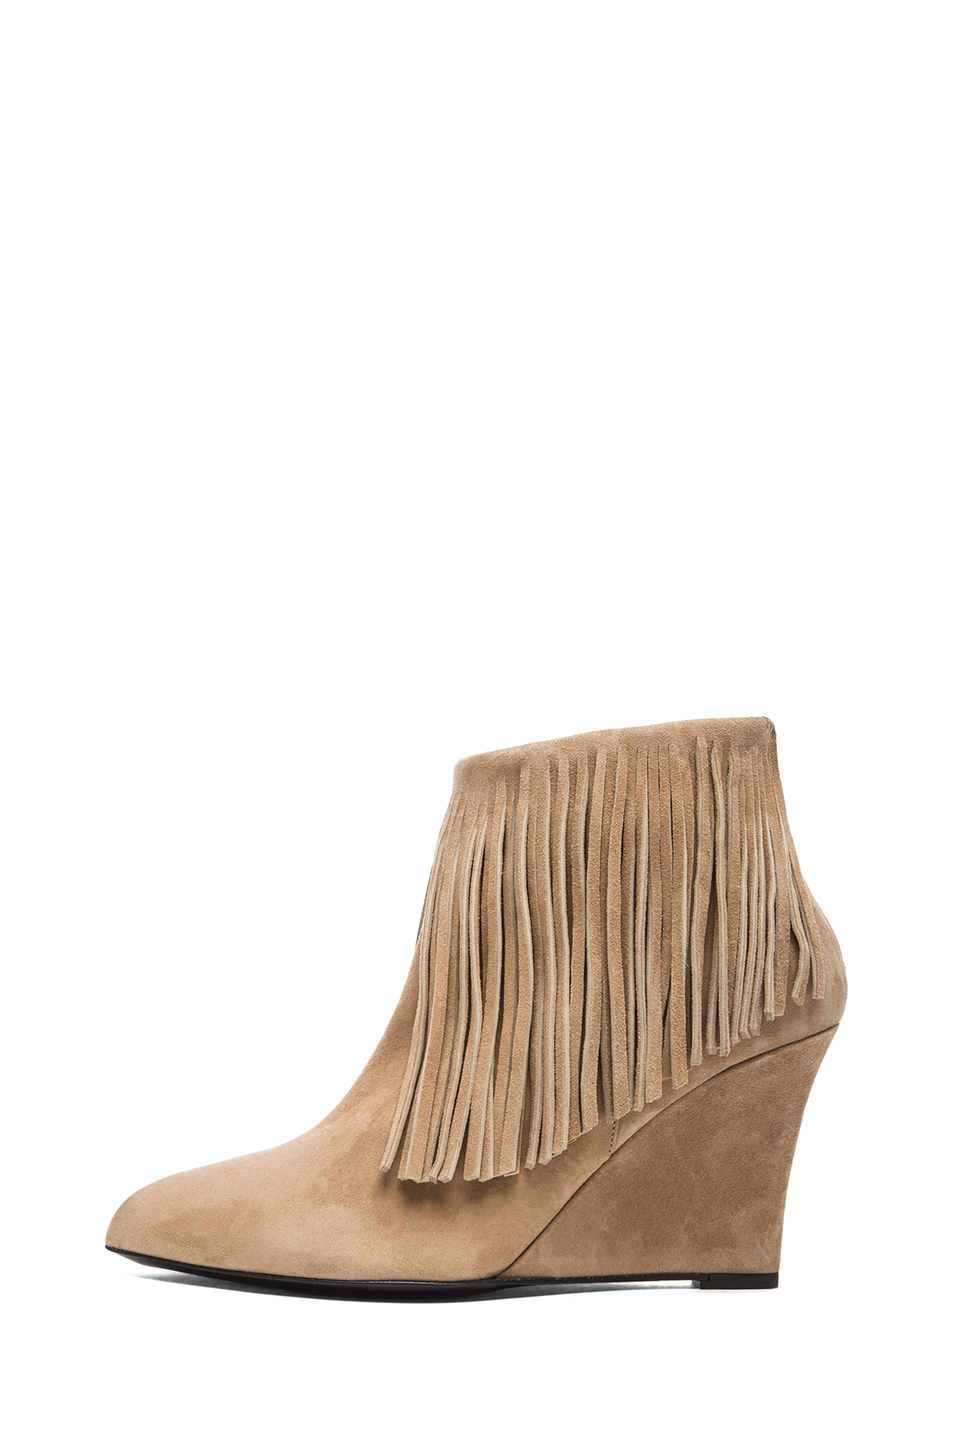 Elyse Walker Los Angeles|Suede Fringe Booties in Taupe